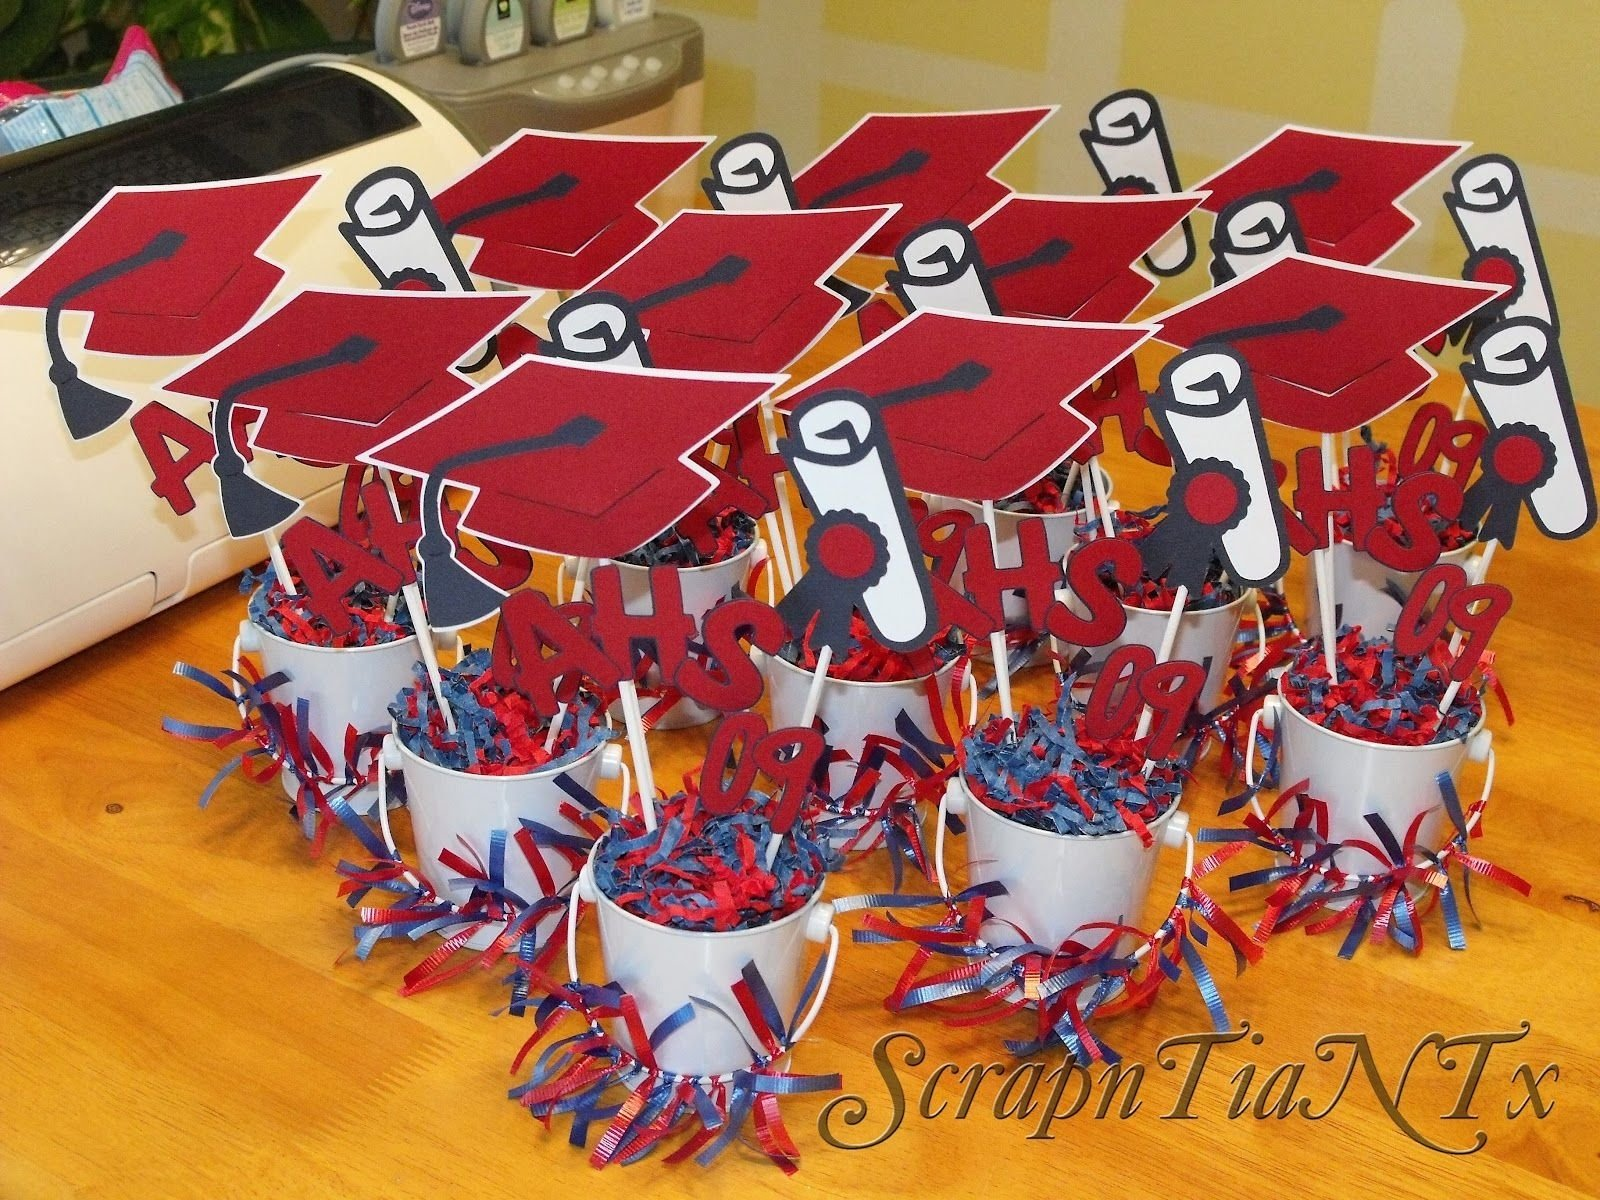 10 Most Popular Graduation Party Table Centerpiece Ideas graduation centerpieces pails with cap and year decorations